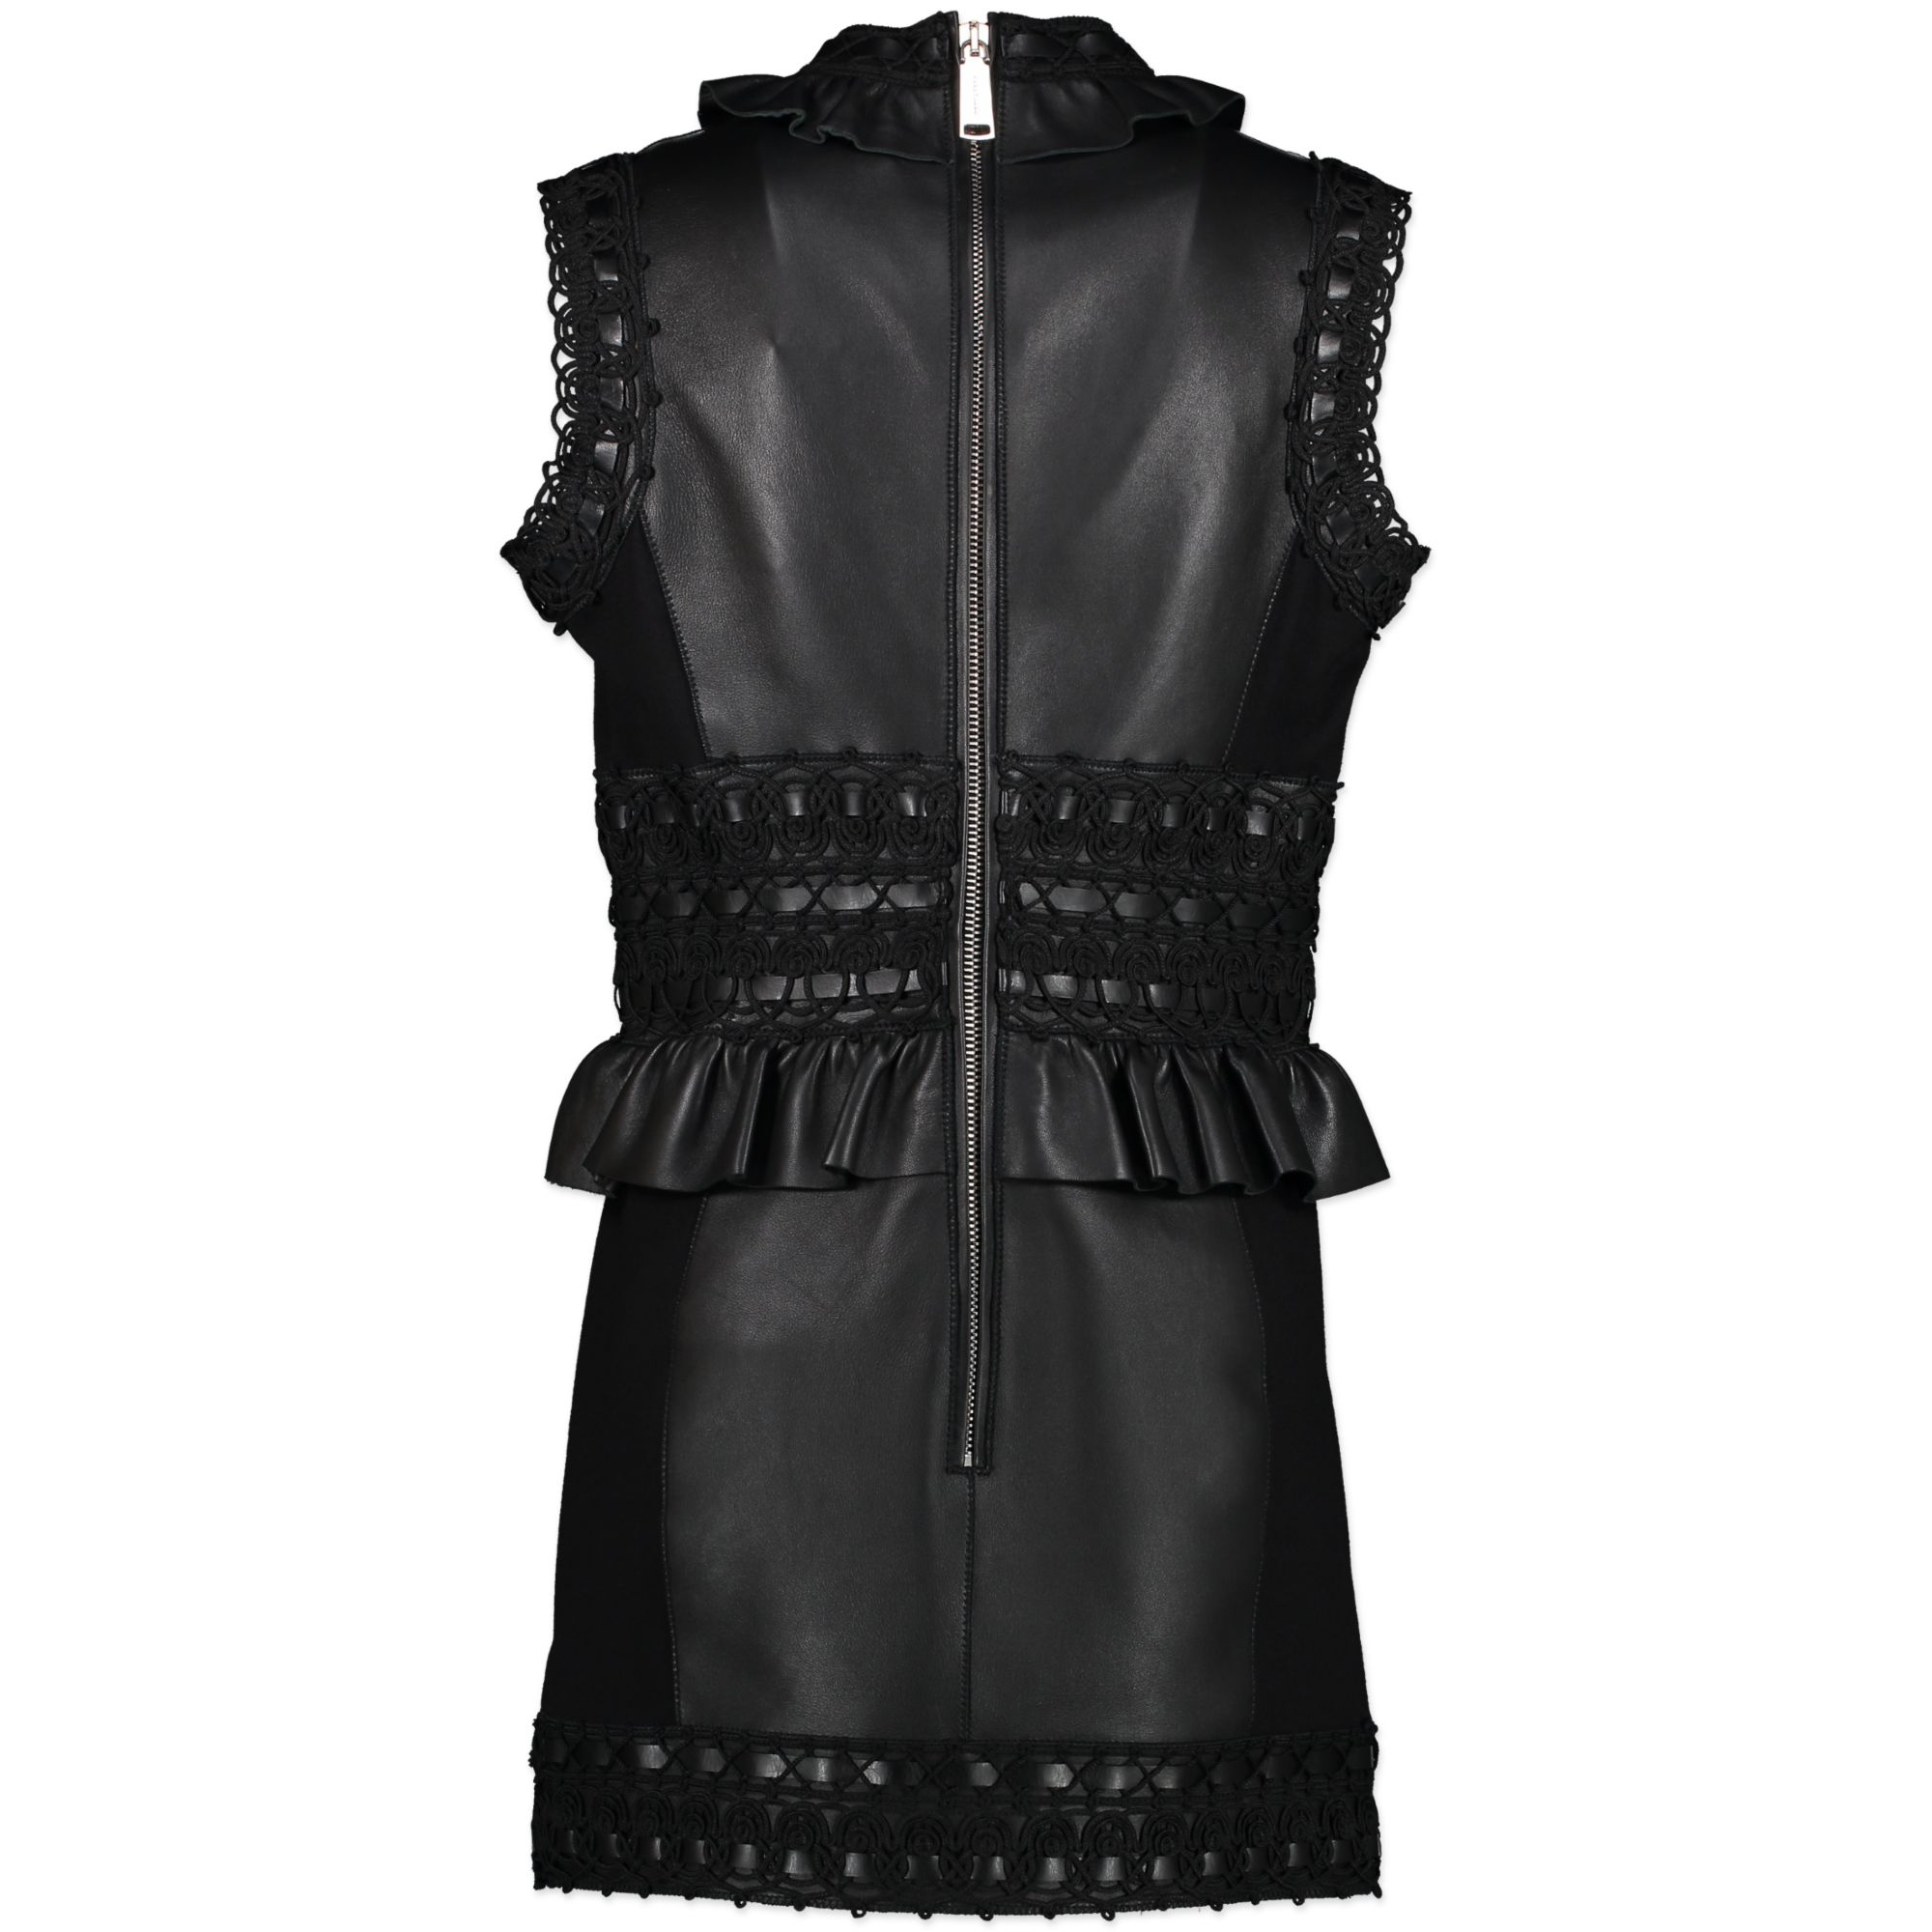 Dsuared2 Black Leather Mini Dress - It size 44